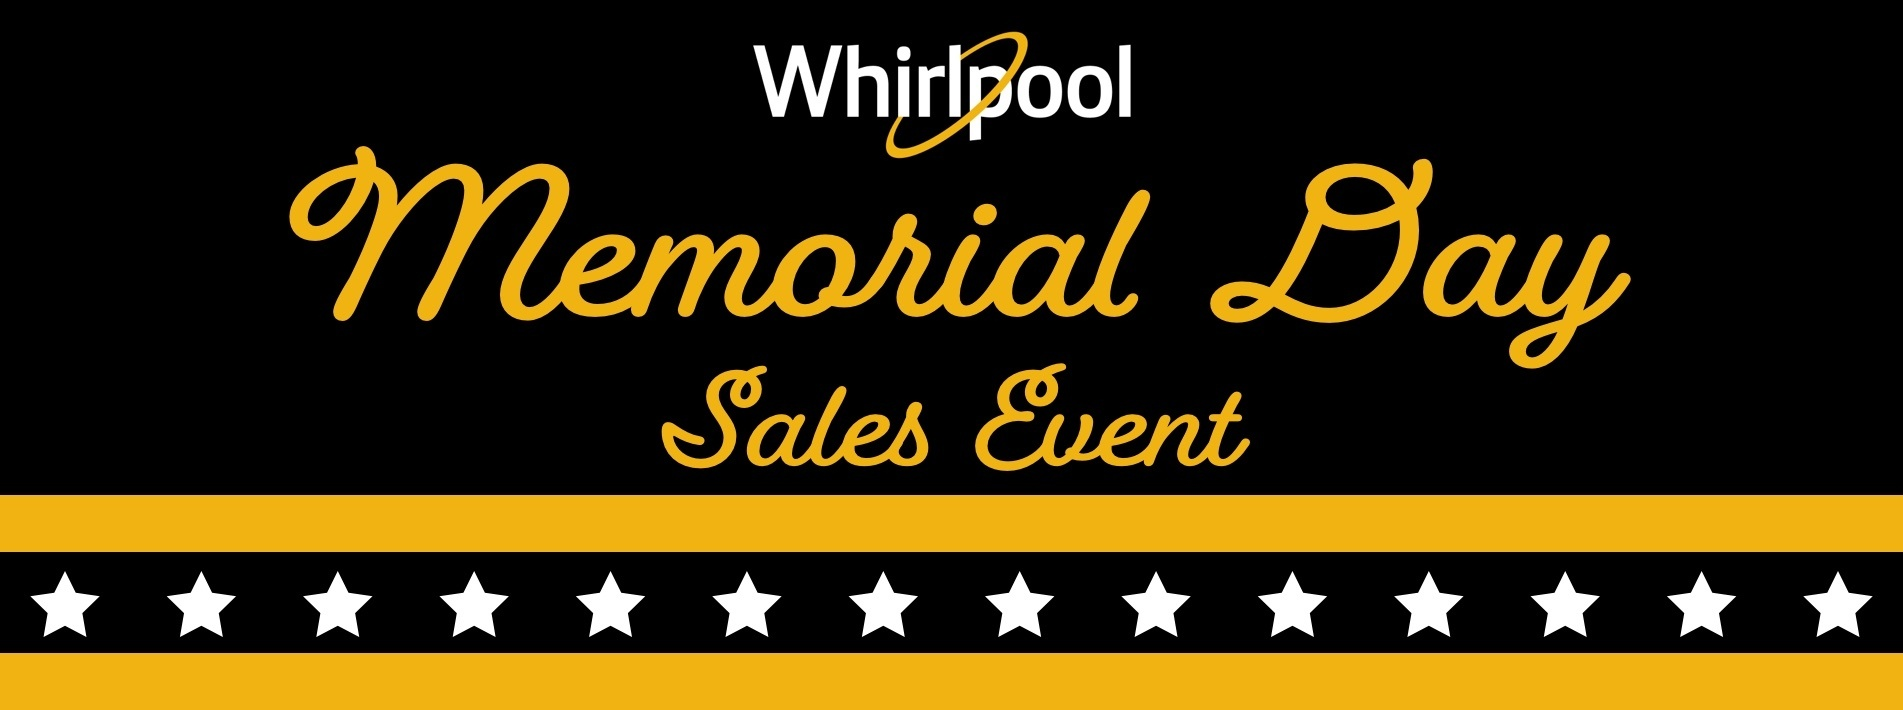 Whirlpool-memorial-day-2021